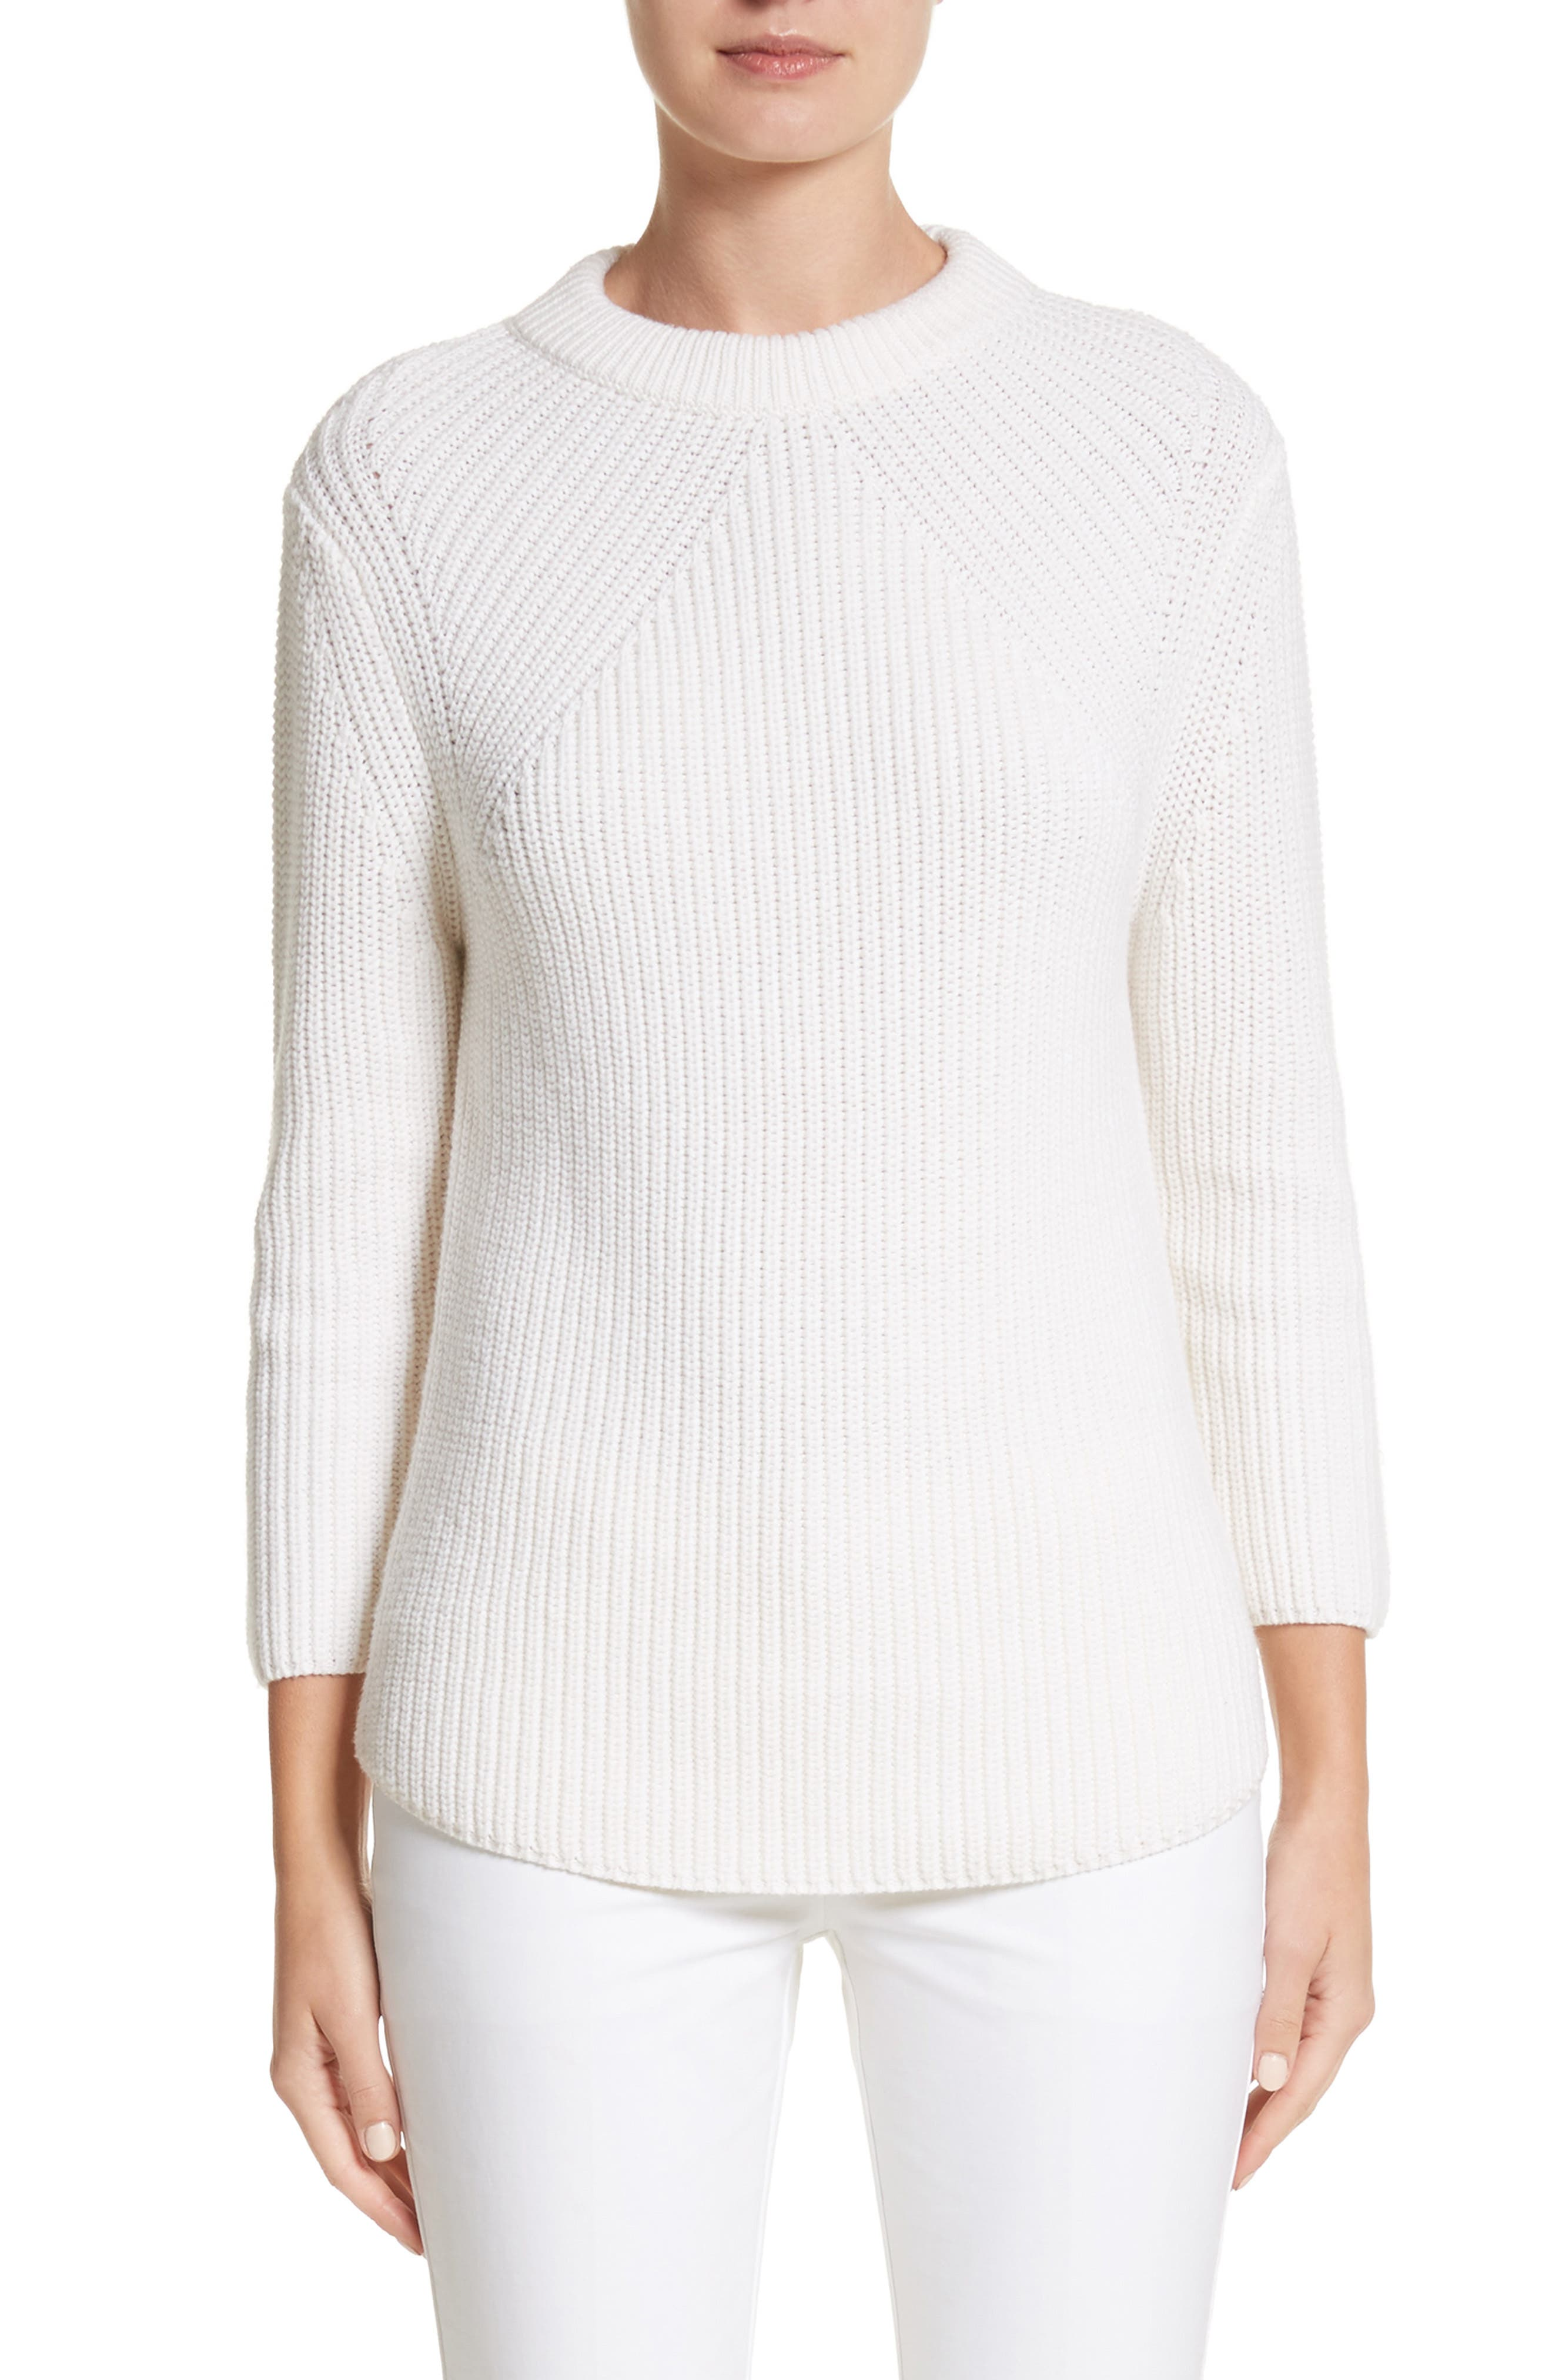 Michael Kors Merino Wool & Cotton Pullover